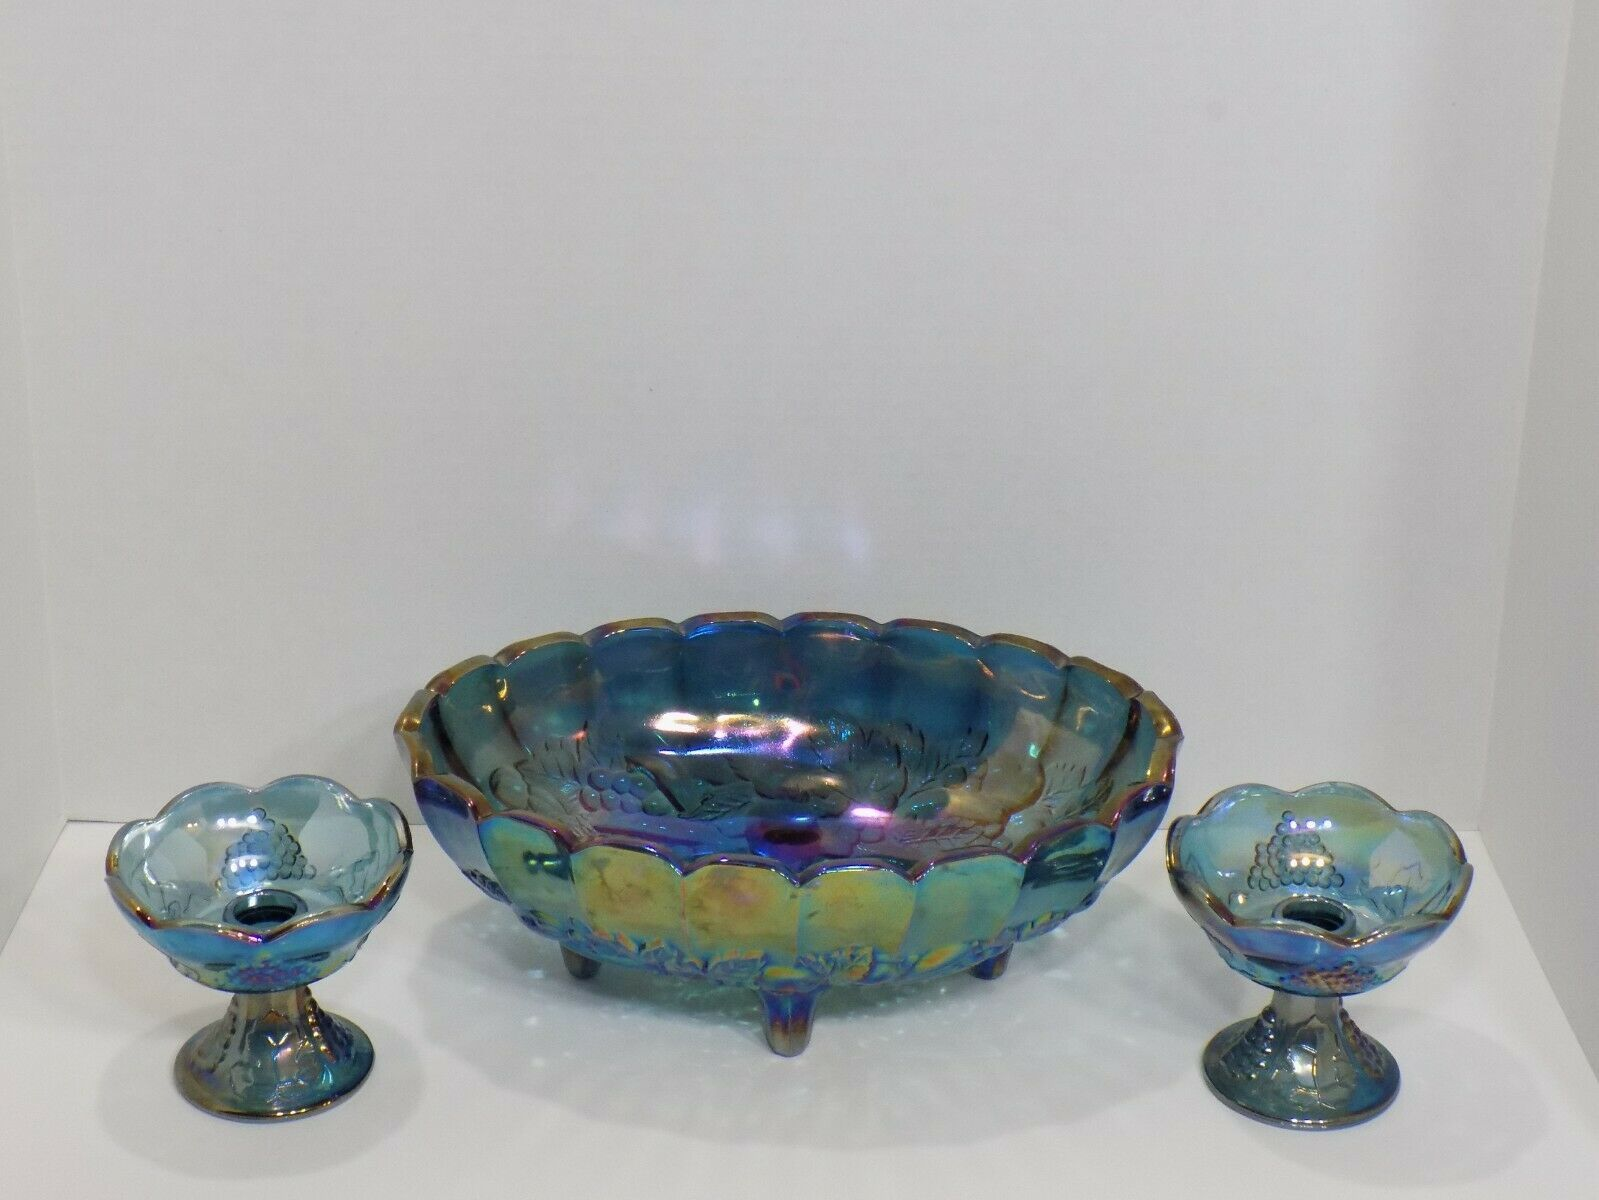 Vintage Indiana 3 pc Blue Carnival Glass Oval Footed Bowl & Candlesticks